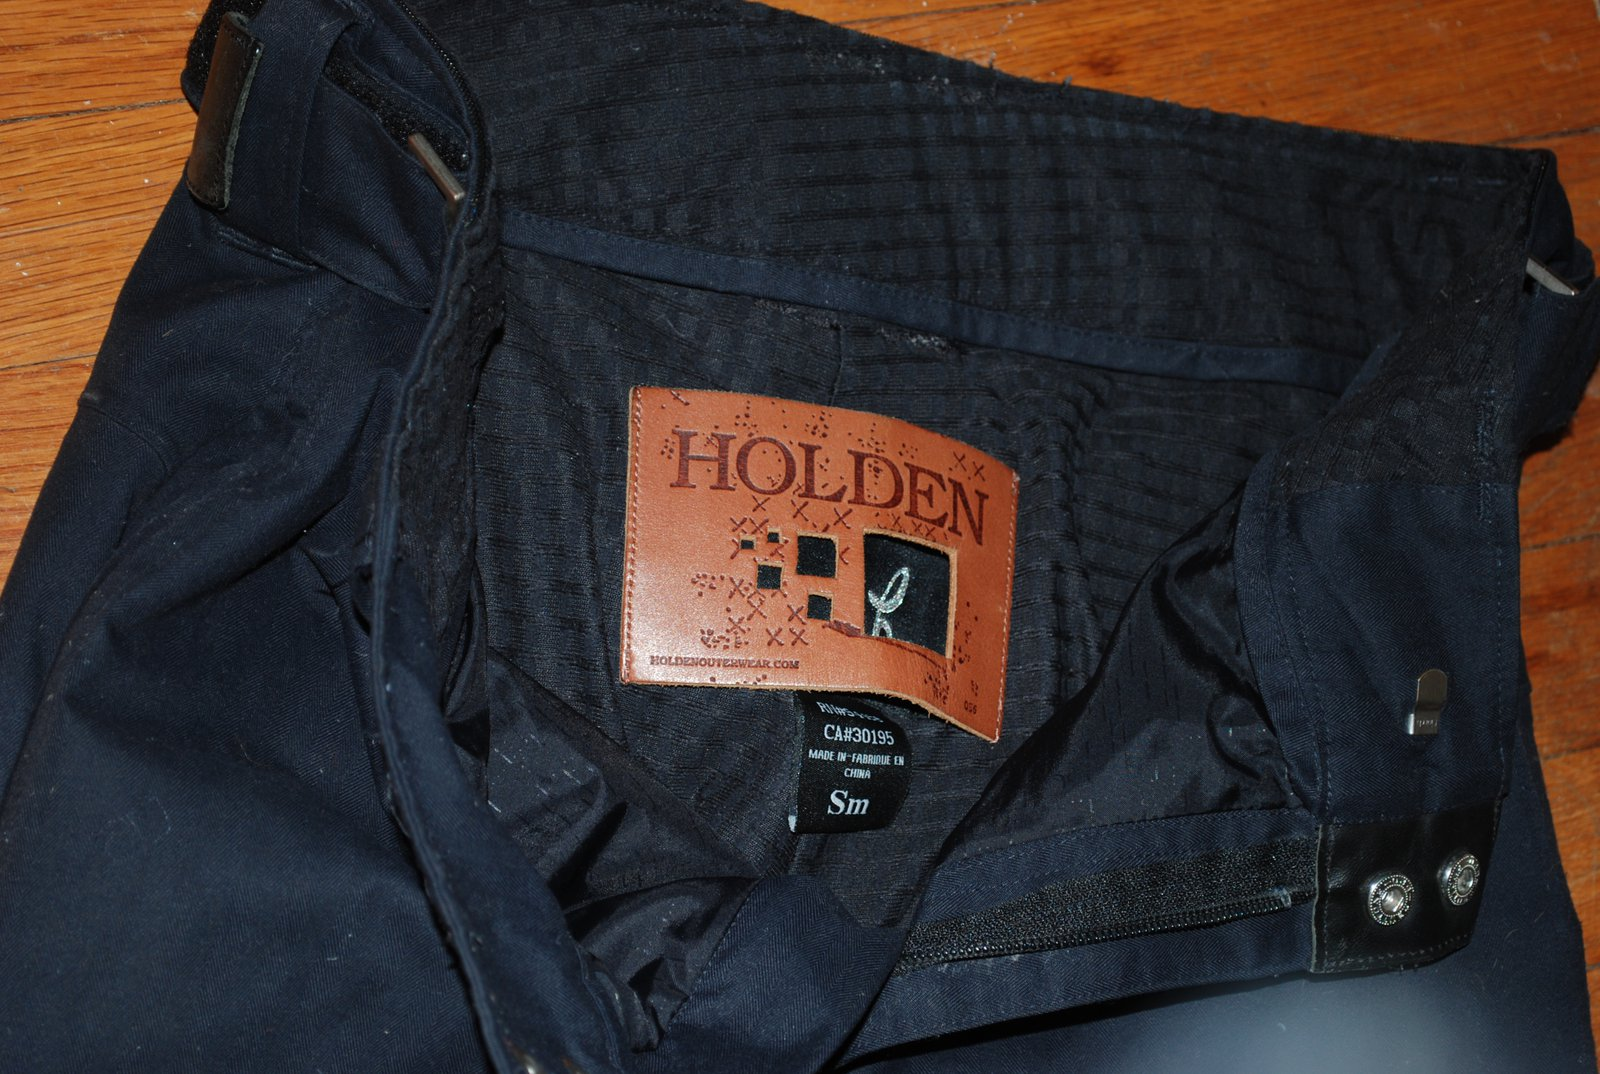 Holdenclassic size small for trade